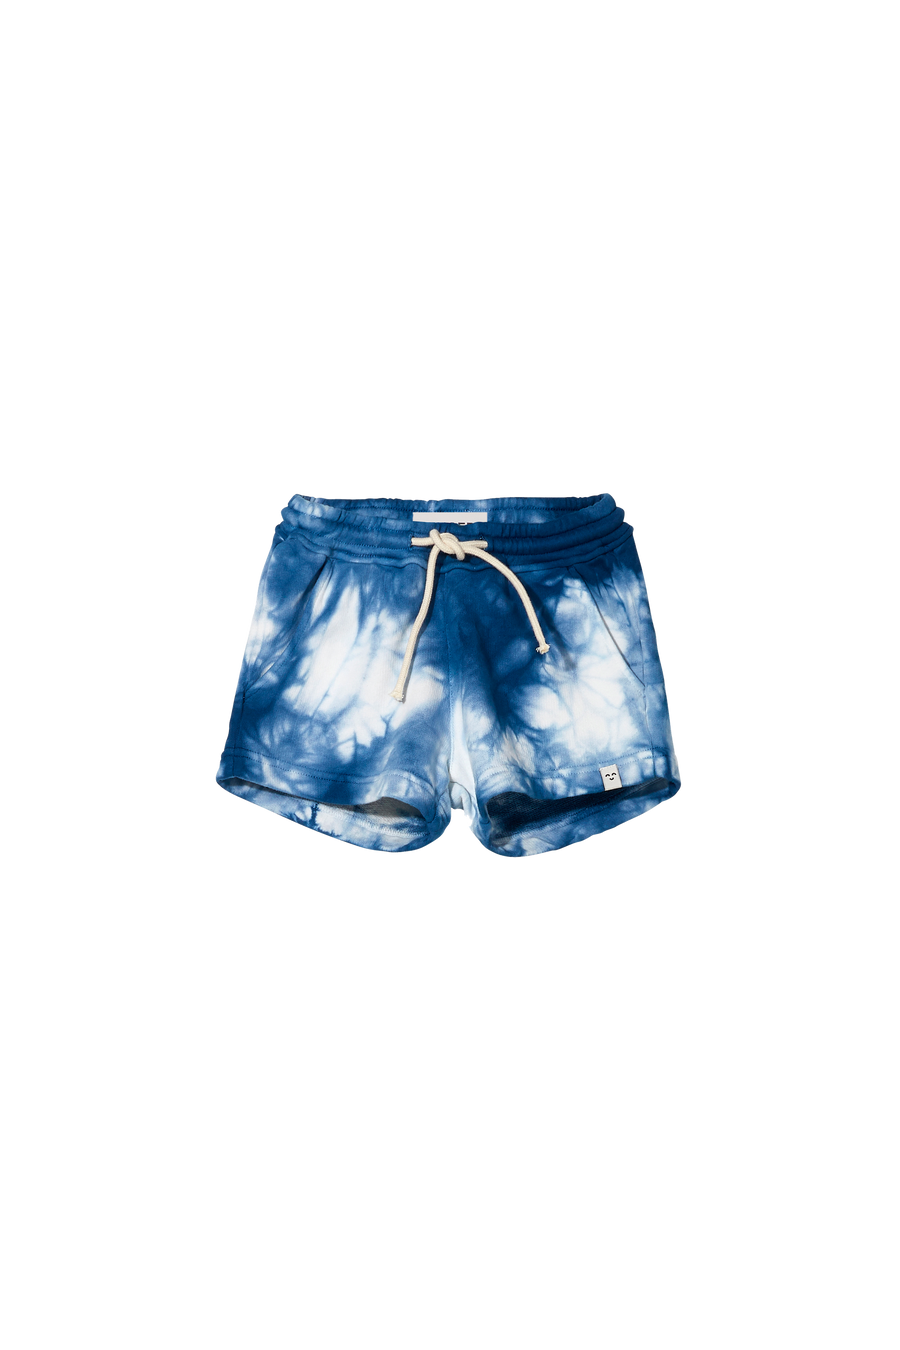 TRINITY Work Blue Tie & Dye - Elasticated Shorts